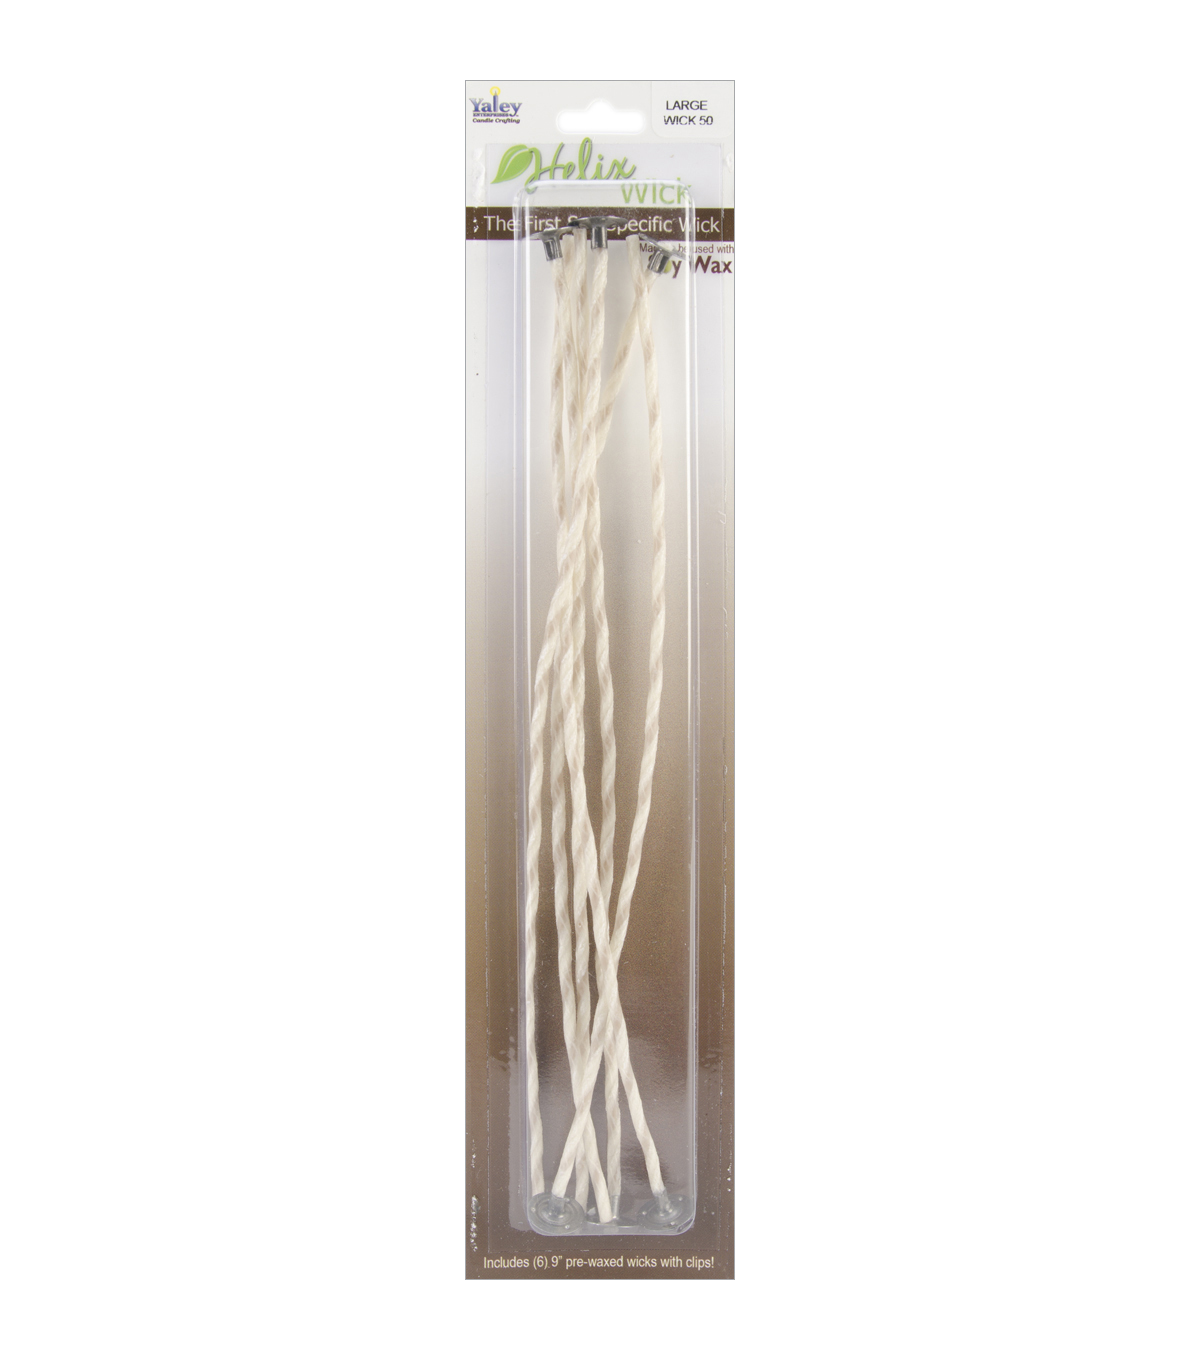 Yaley Candle Crafting Helix Wicks With Clip Large